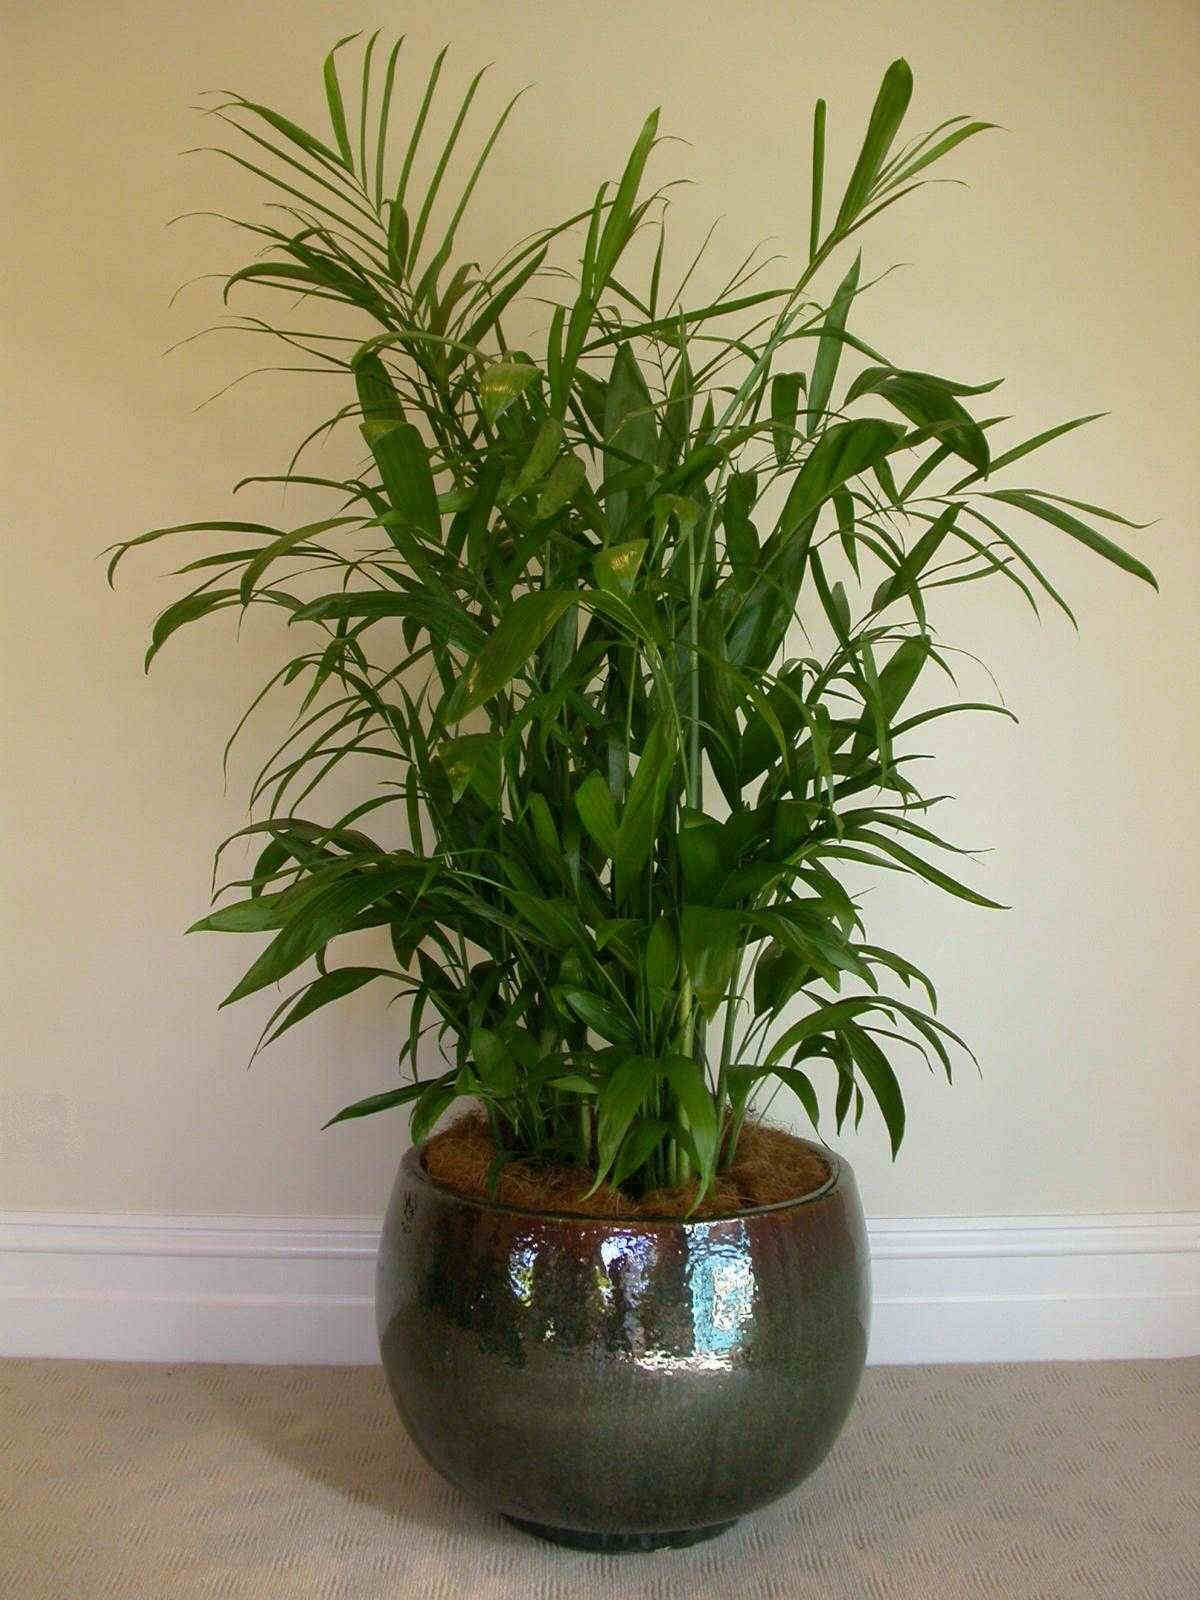 Non toxic house plants for better iaq living room 7 uncommon indoor plants